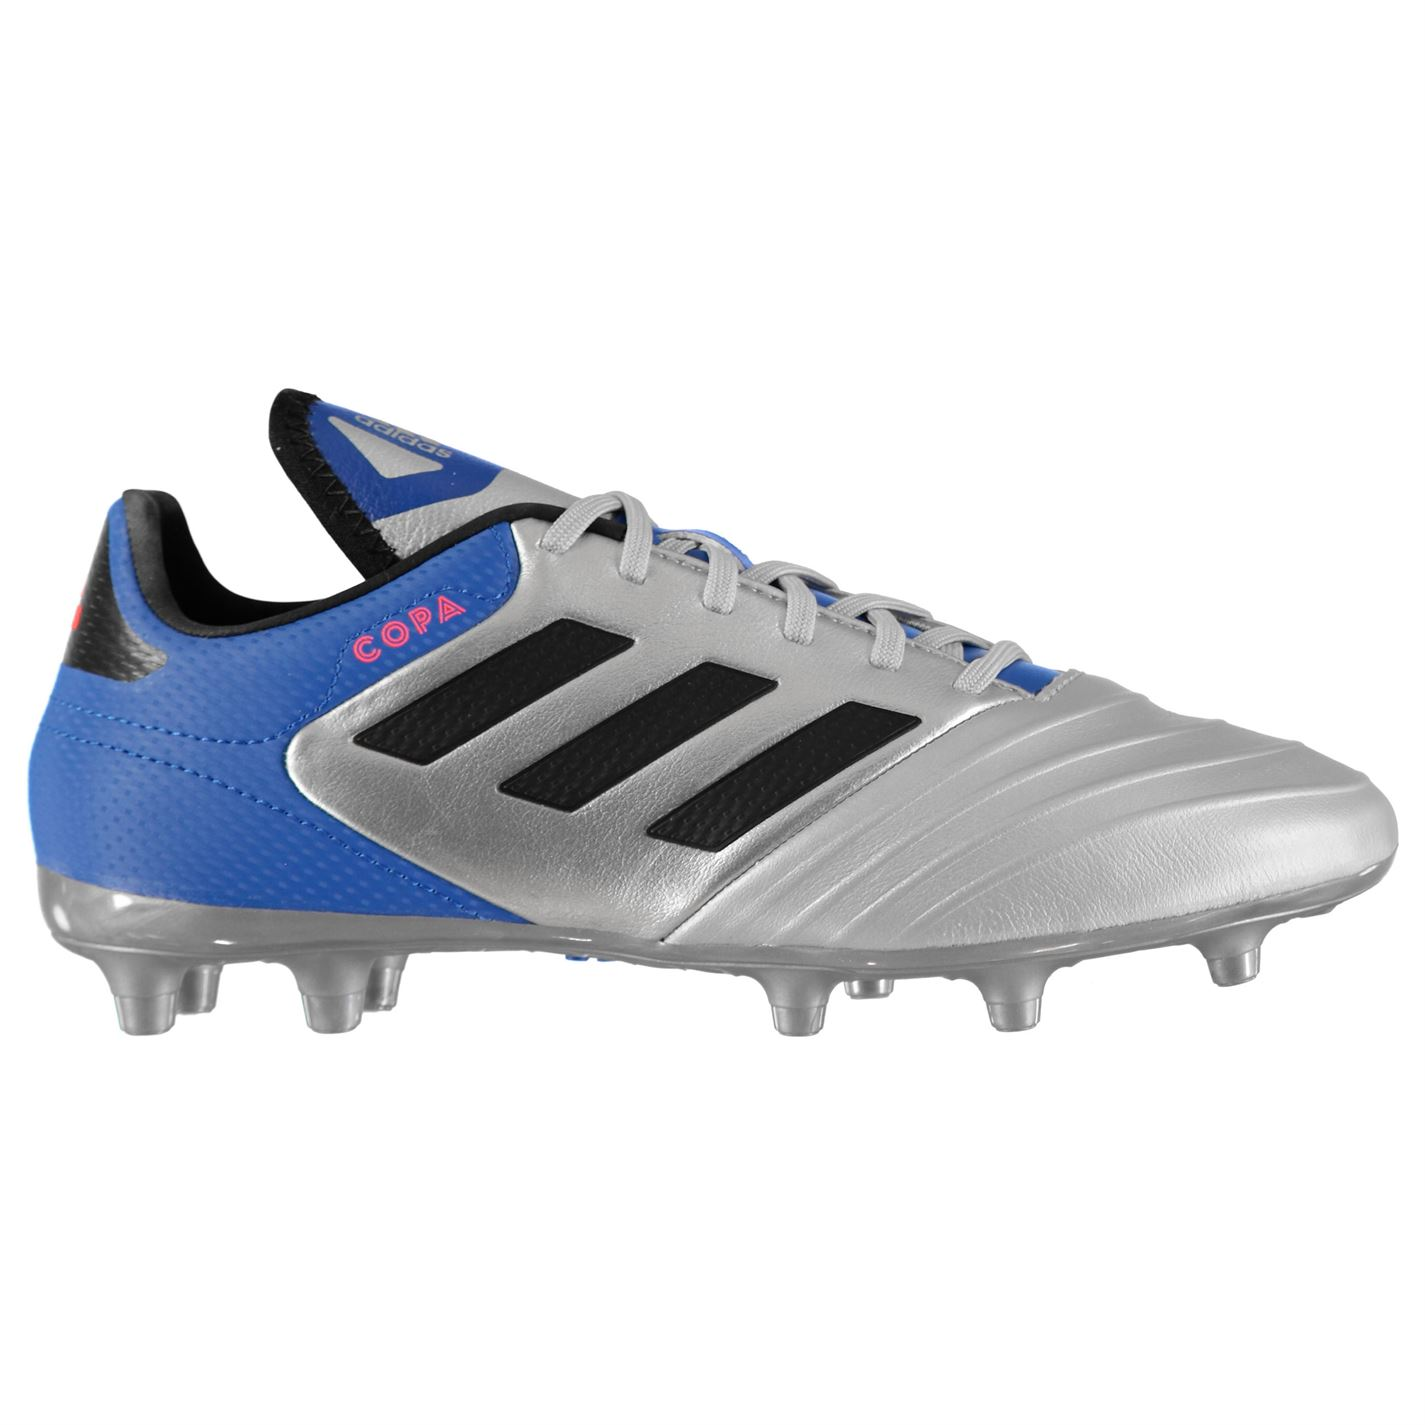 cheap for discount 86332 54a7b adidas Copa 18.3 FG Football Boots Mens Gents Firm Ground Laces Fastened  Padded